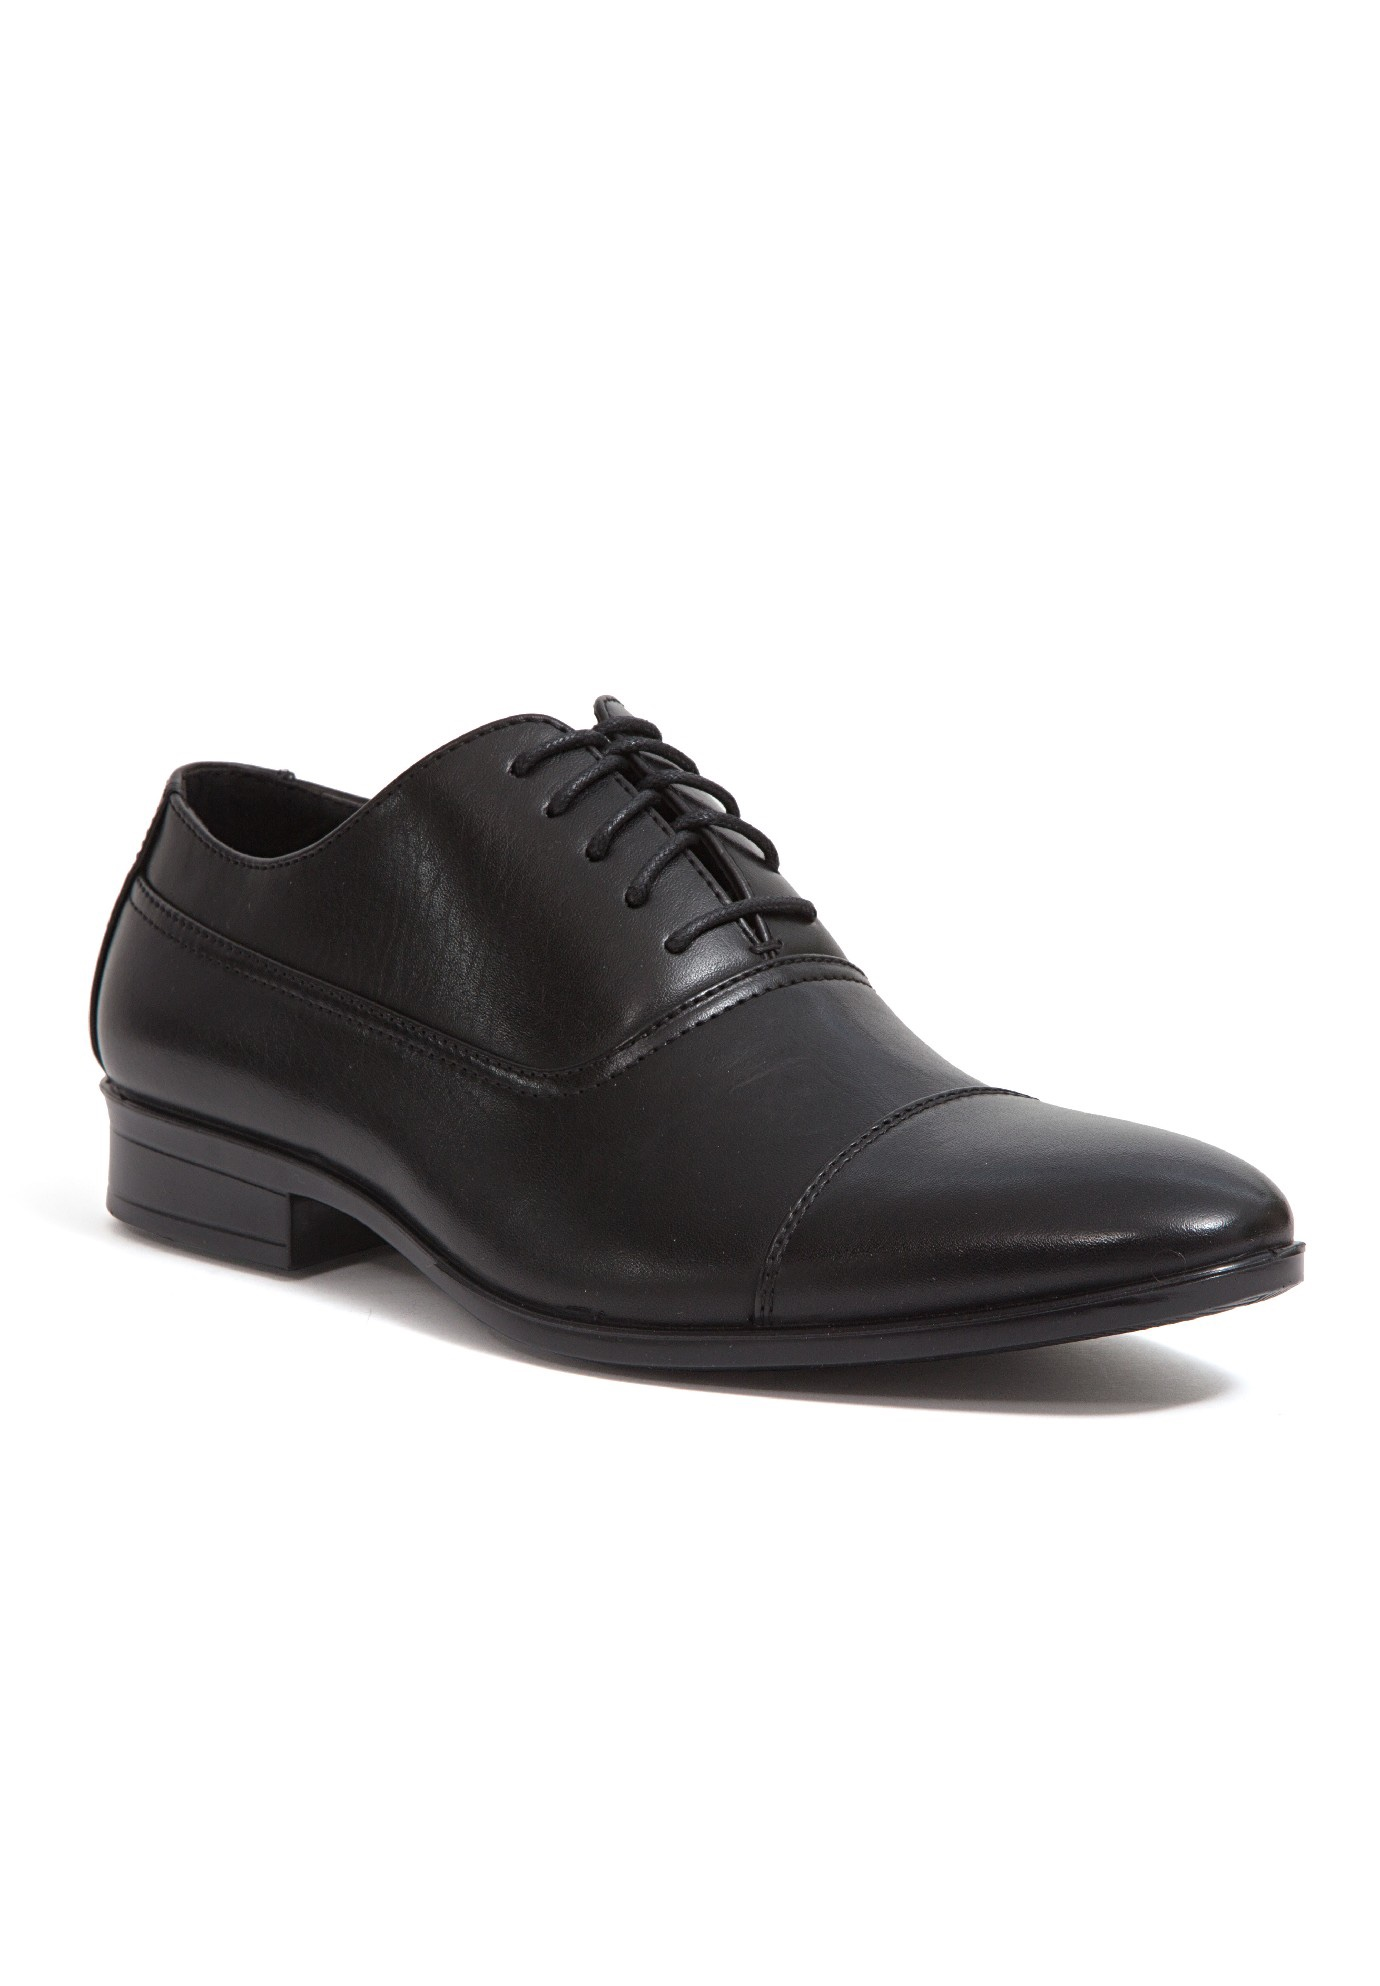 Deer Stags® Townsend Cap-Toe Oxford Shoes,